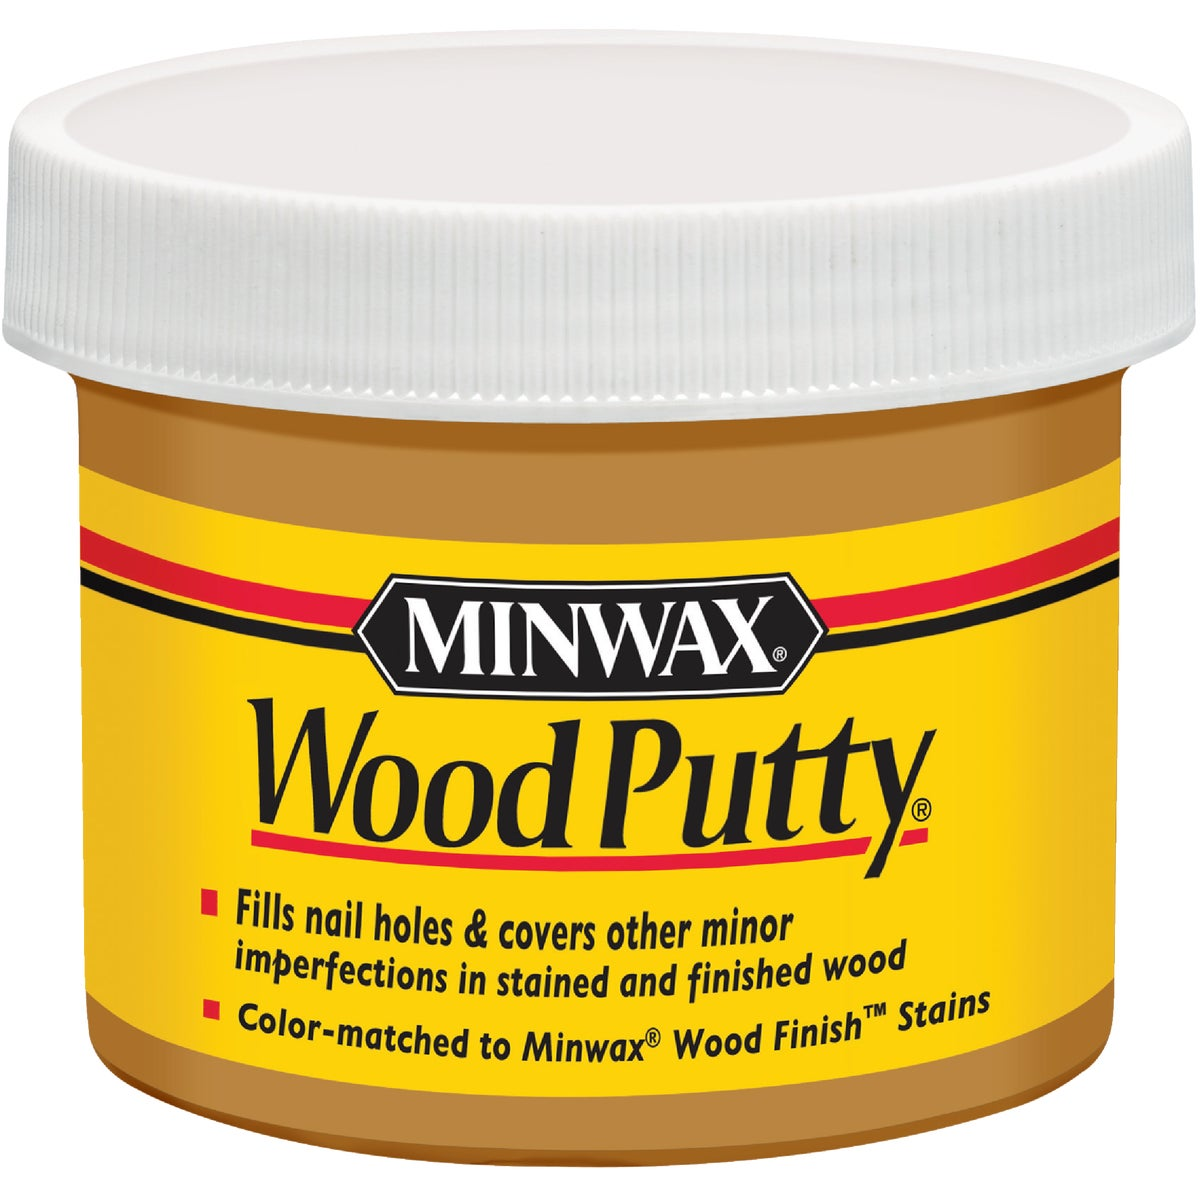 CHERRY WOOD PUTTY - 13615 by Minwax Company